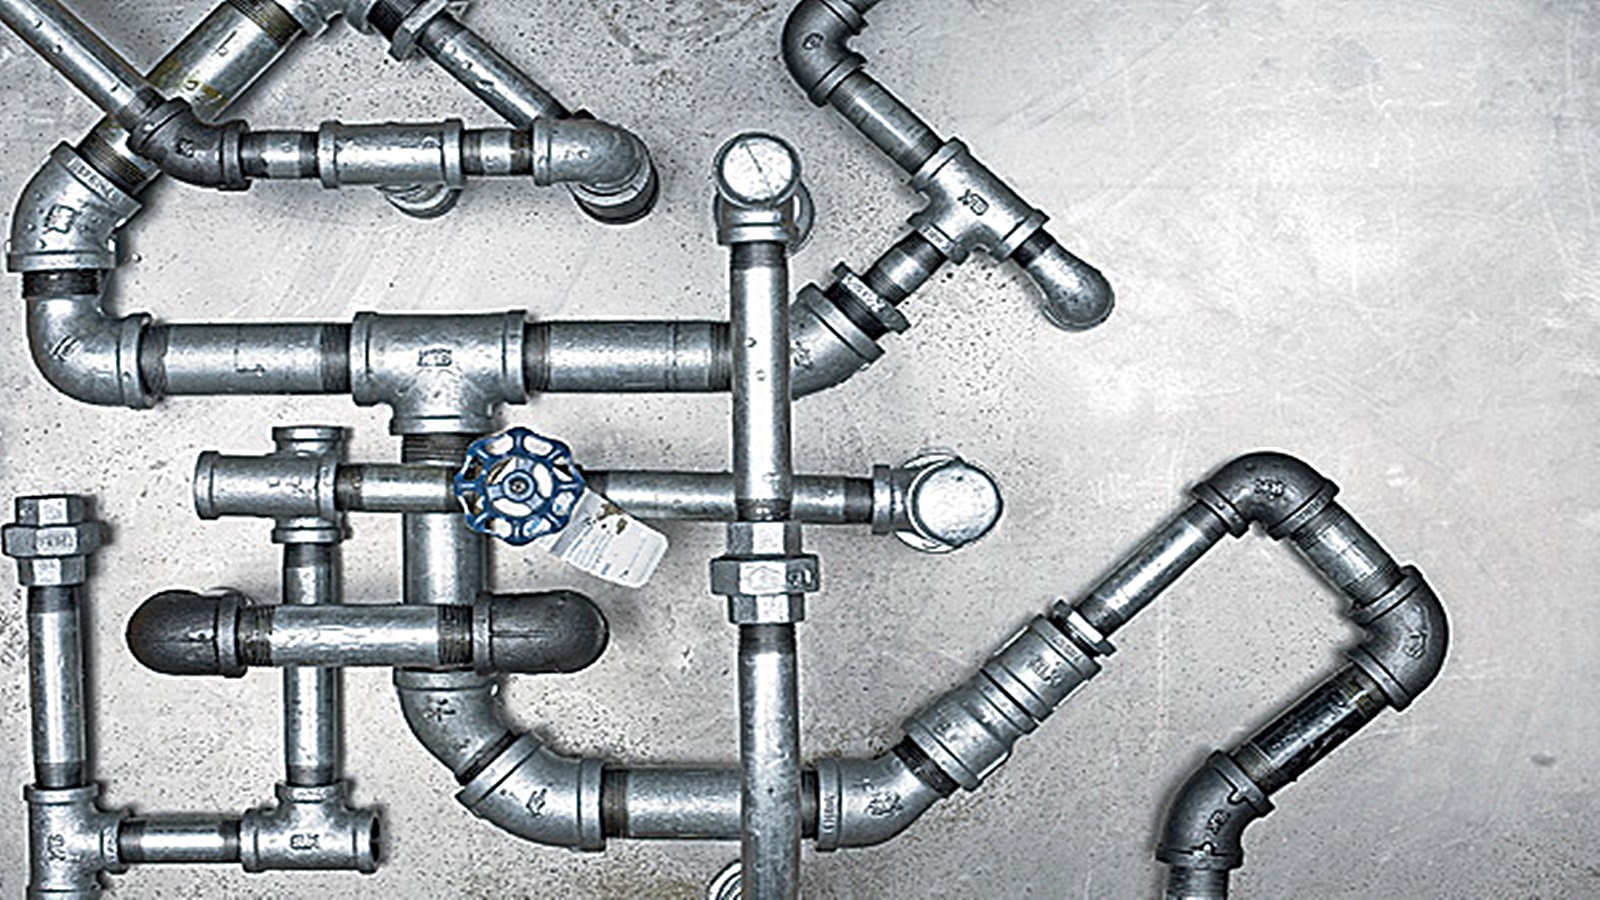 Plumbing philosophy jonathan r baker for What pipes to use for plumbing